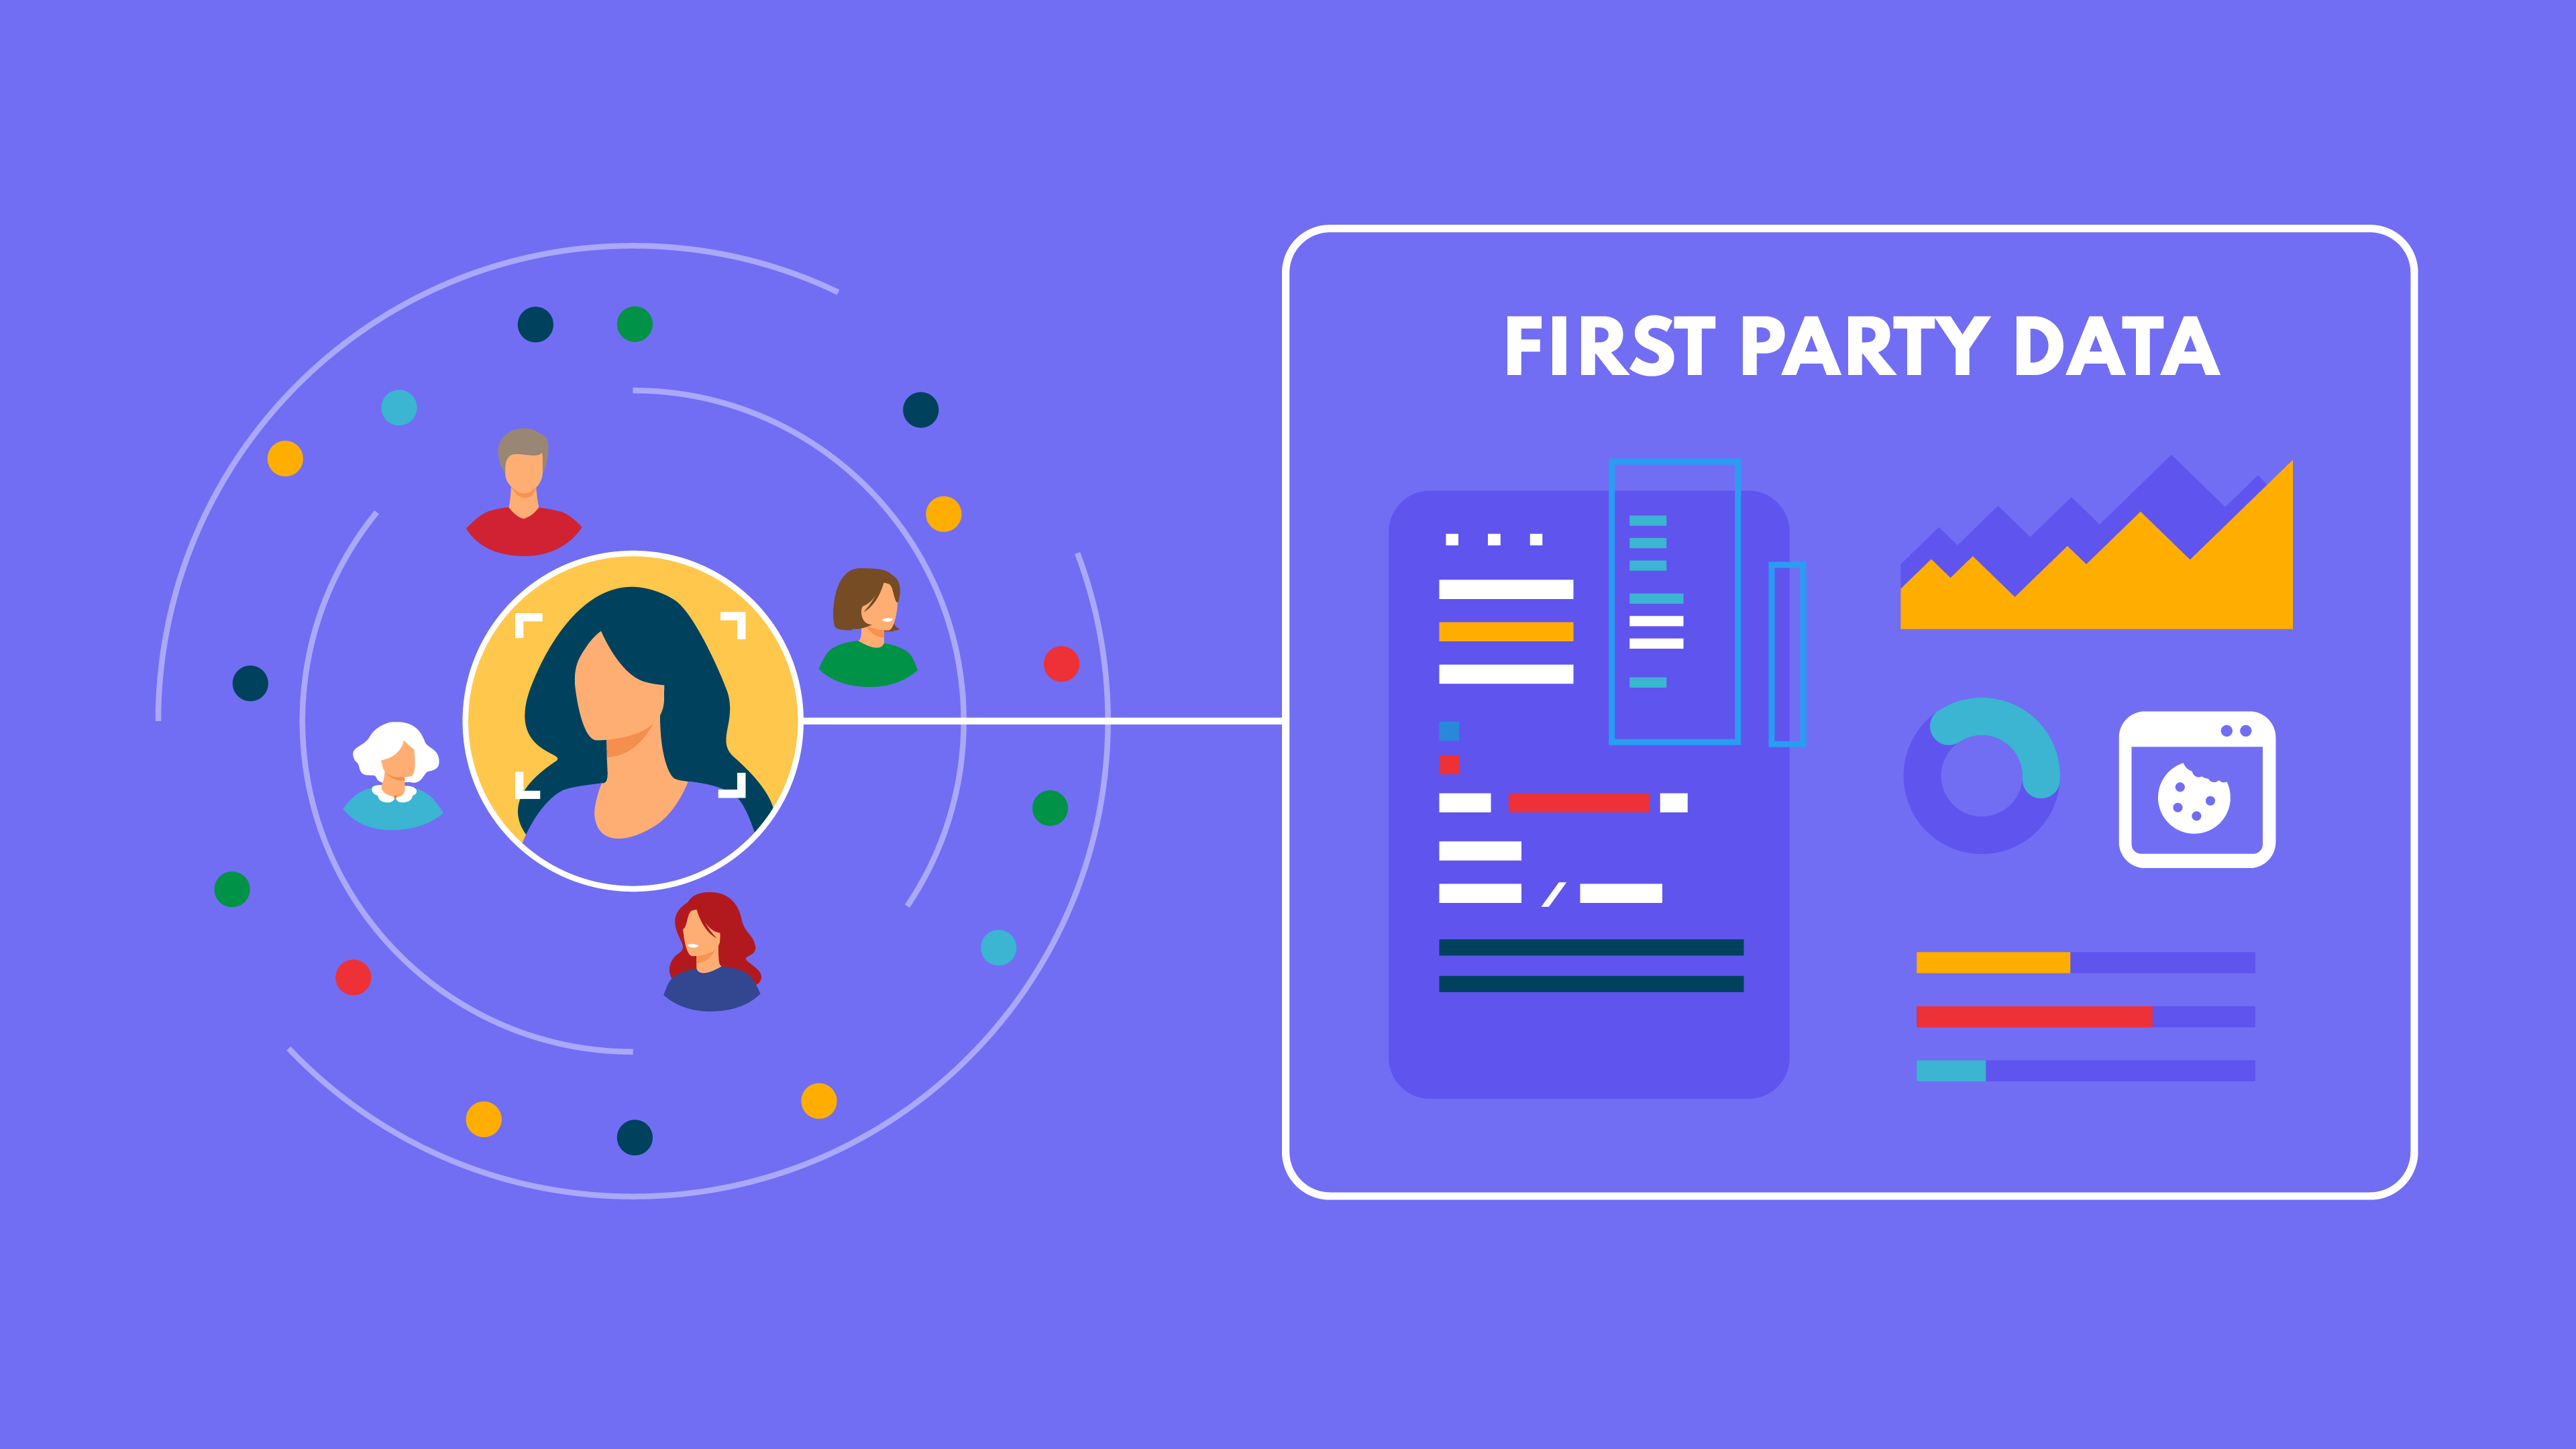 First Party Data definition